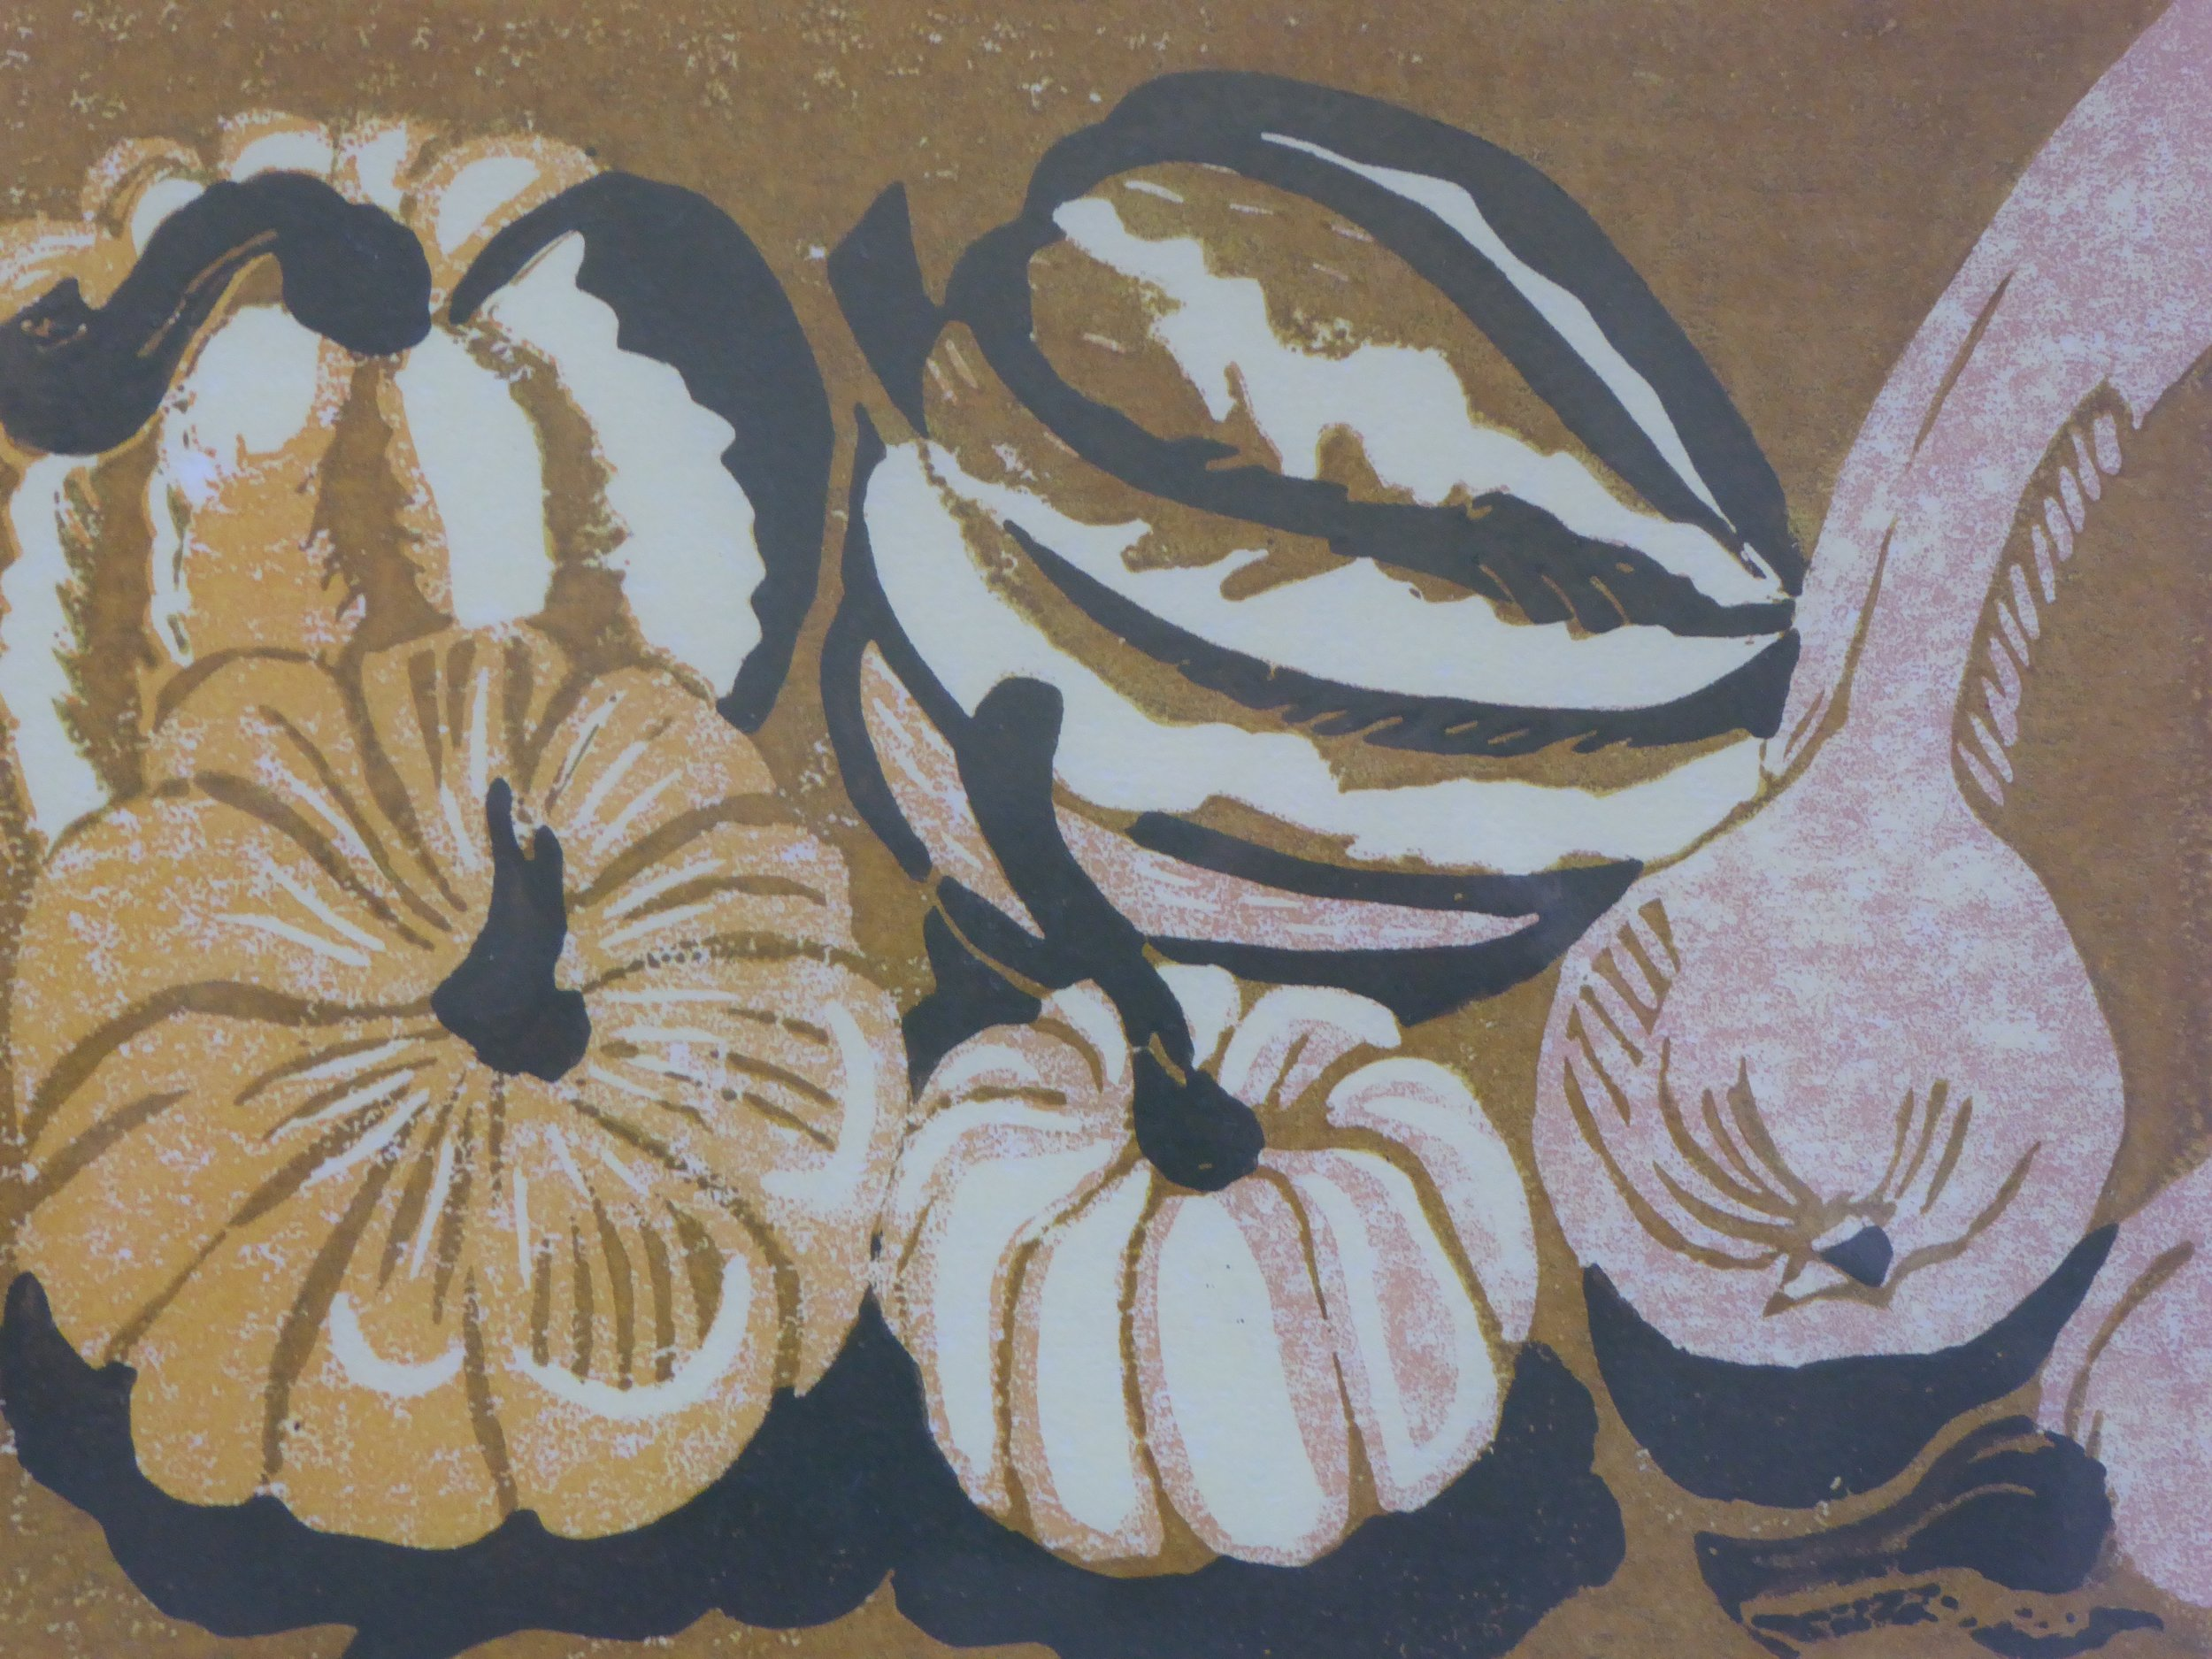 Squashes from my veg garden (reduction lino cut) - 28 x 33cm unframed